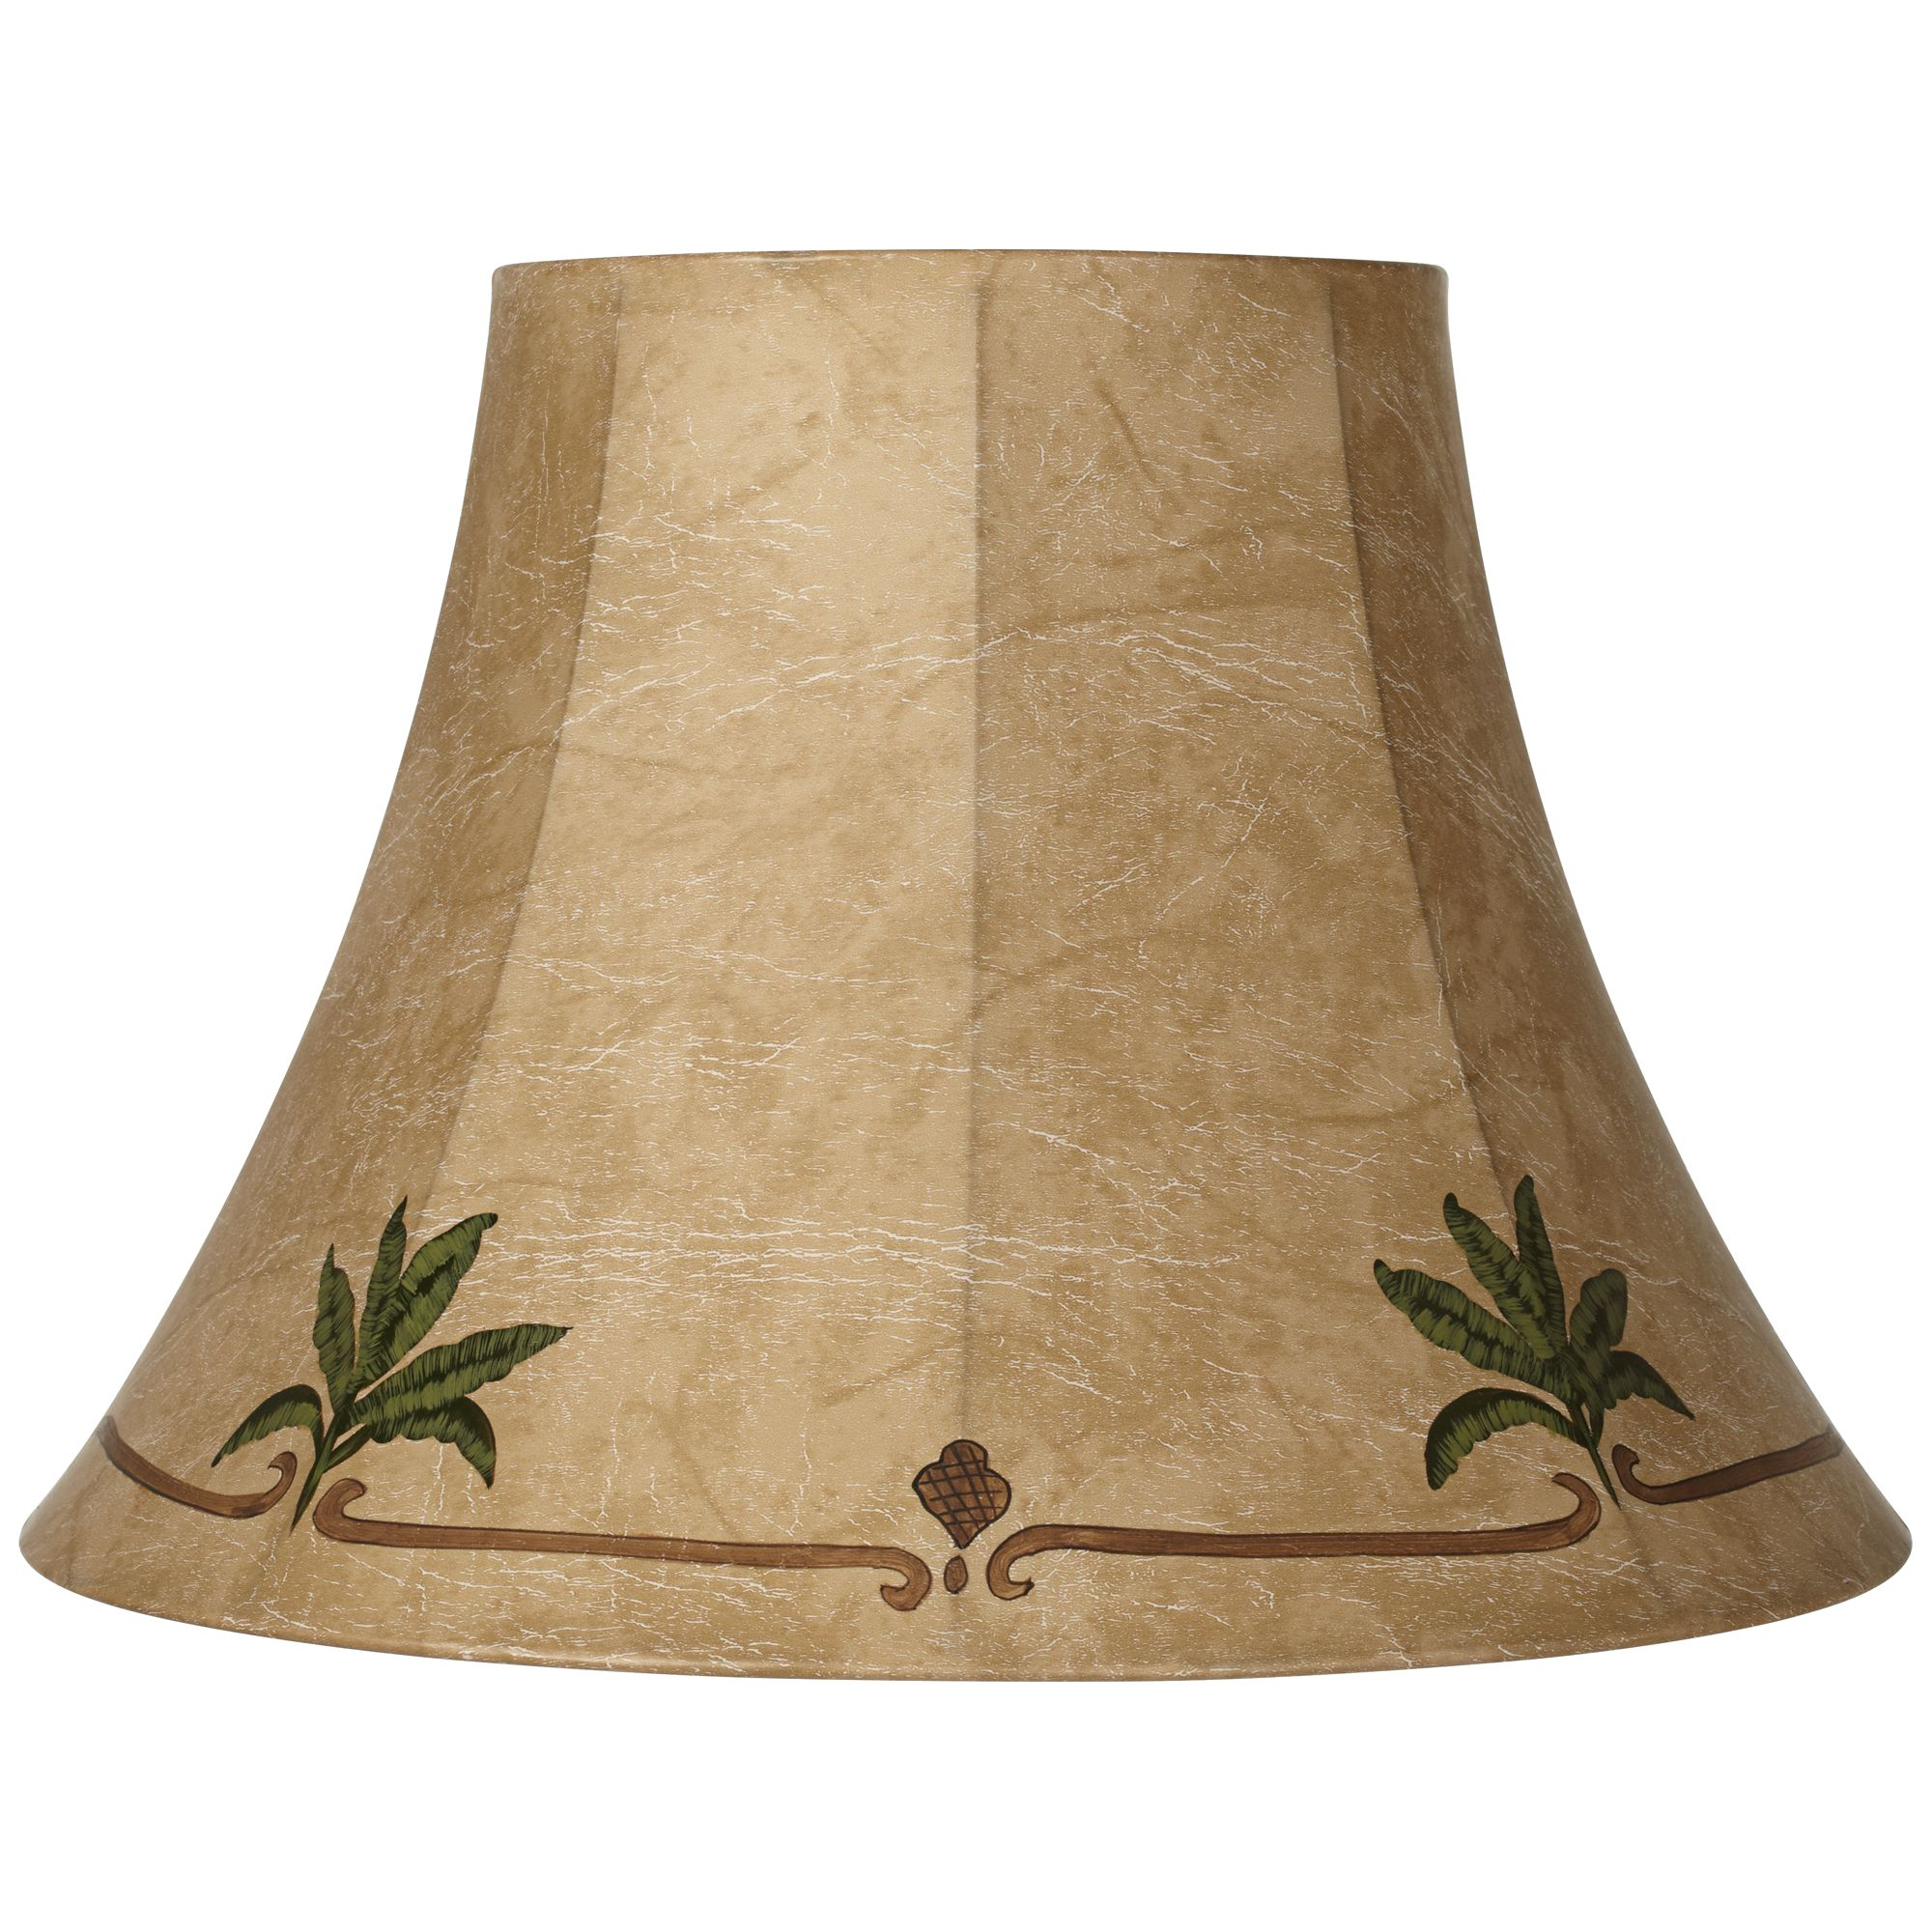 Springcrest Palm Leaf Faux Leather Lamp Shade 9X18x13 (Spider)